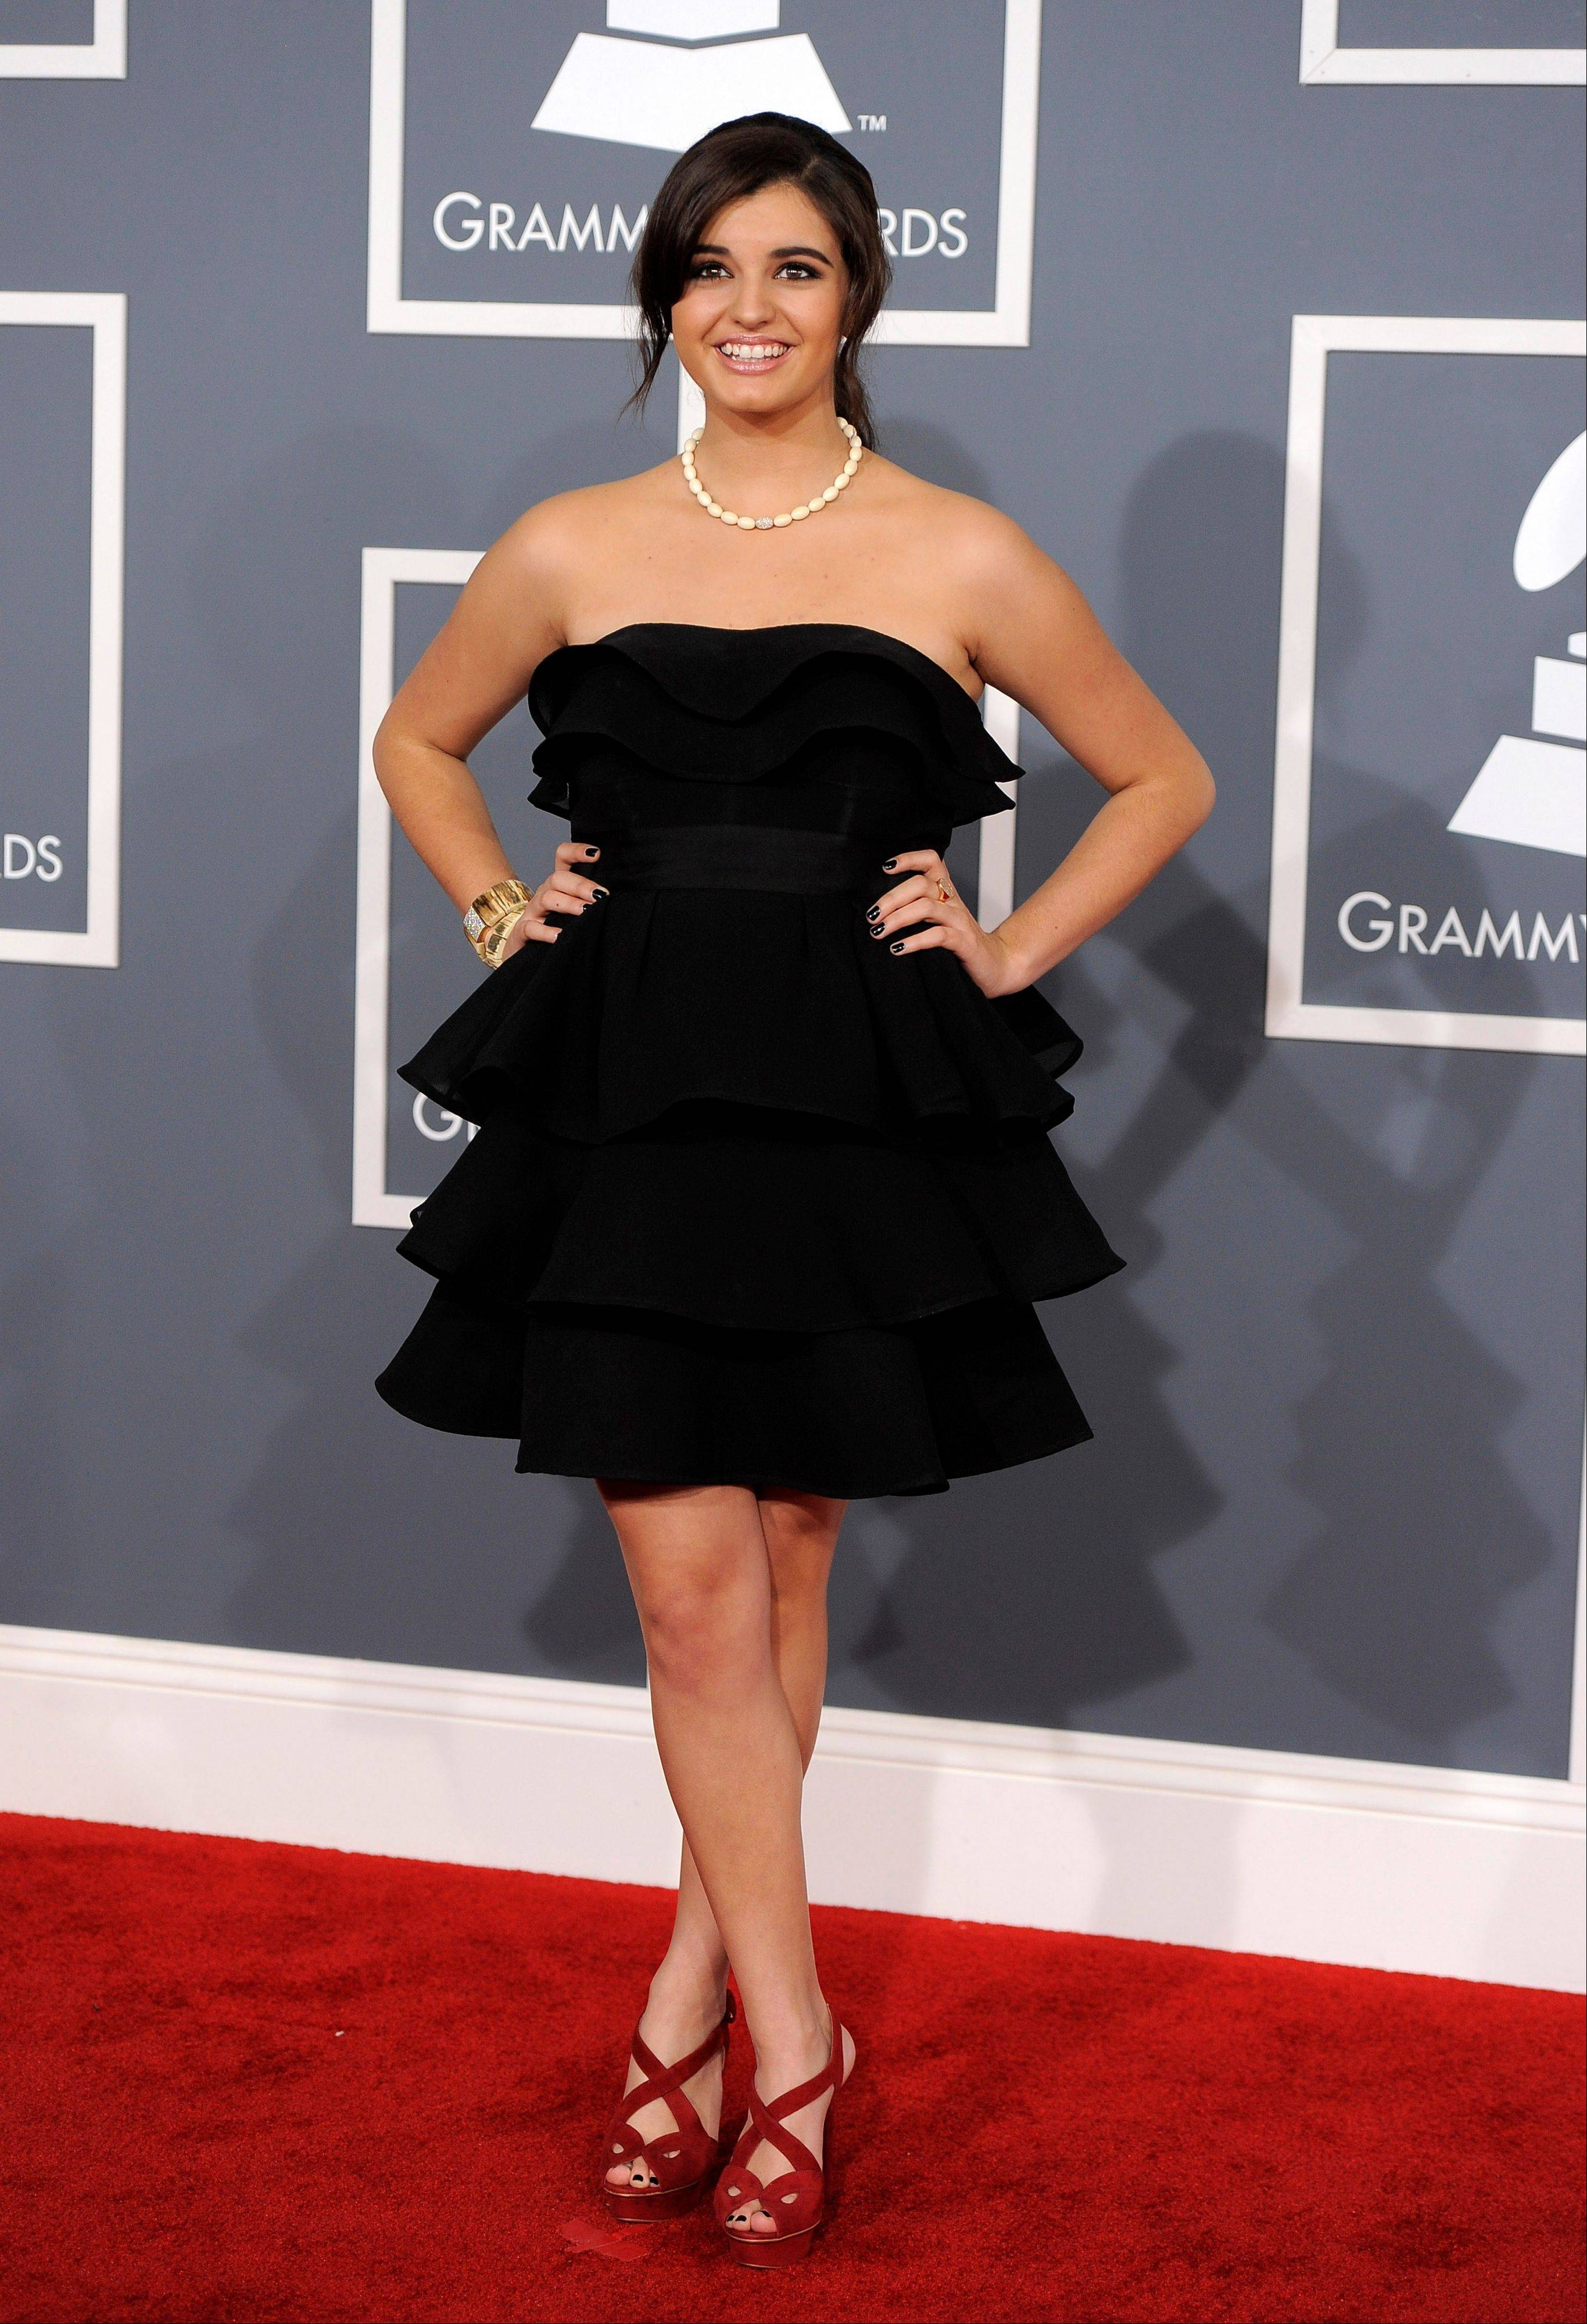 Rebecca Black arrives Sunday at the 54th annual Grammy Awards in Los Angeles.